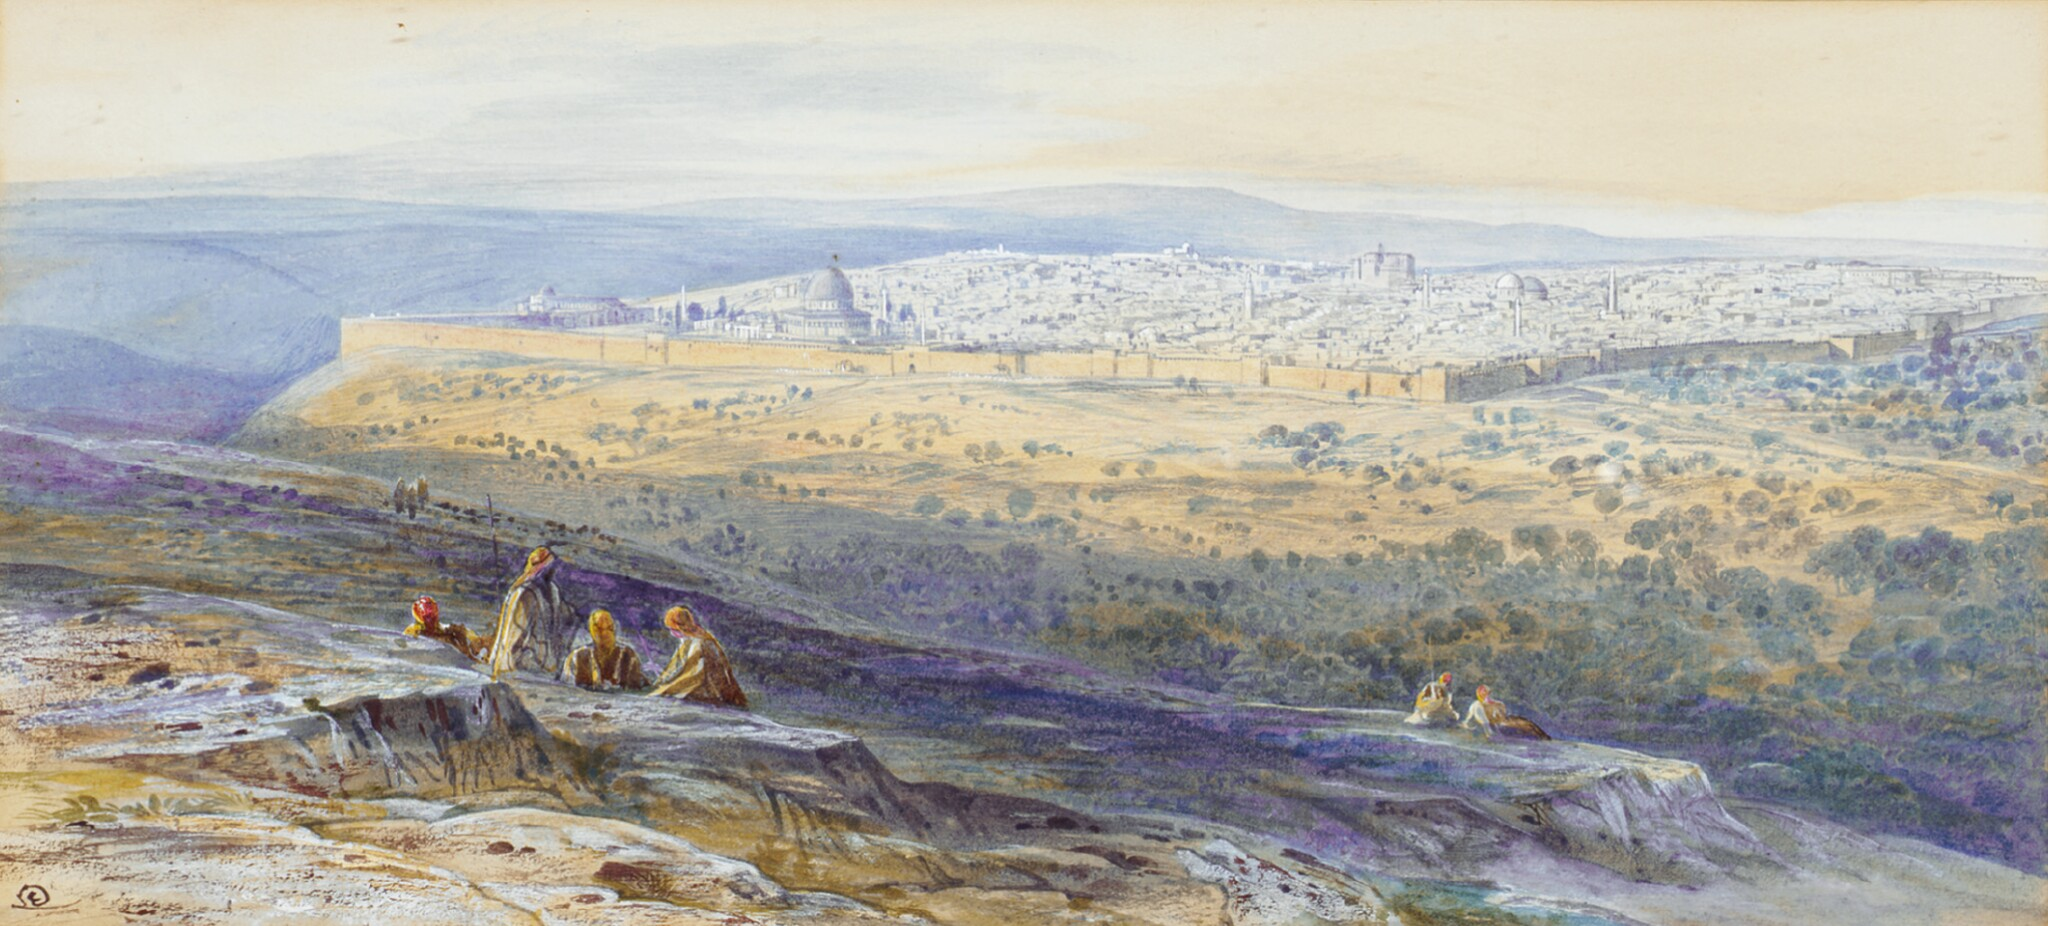 EDWARD LEAR, R.S.W. | Jerusalem from the Mount of Olives